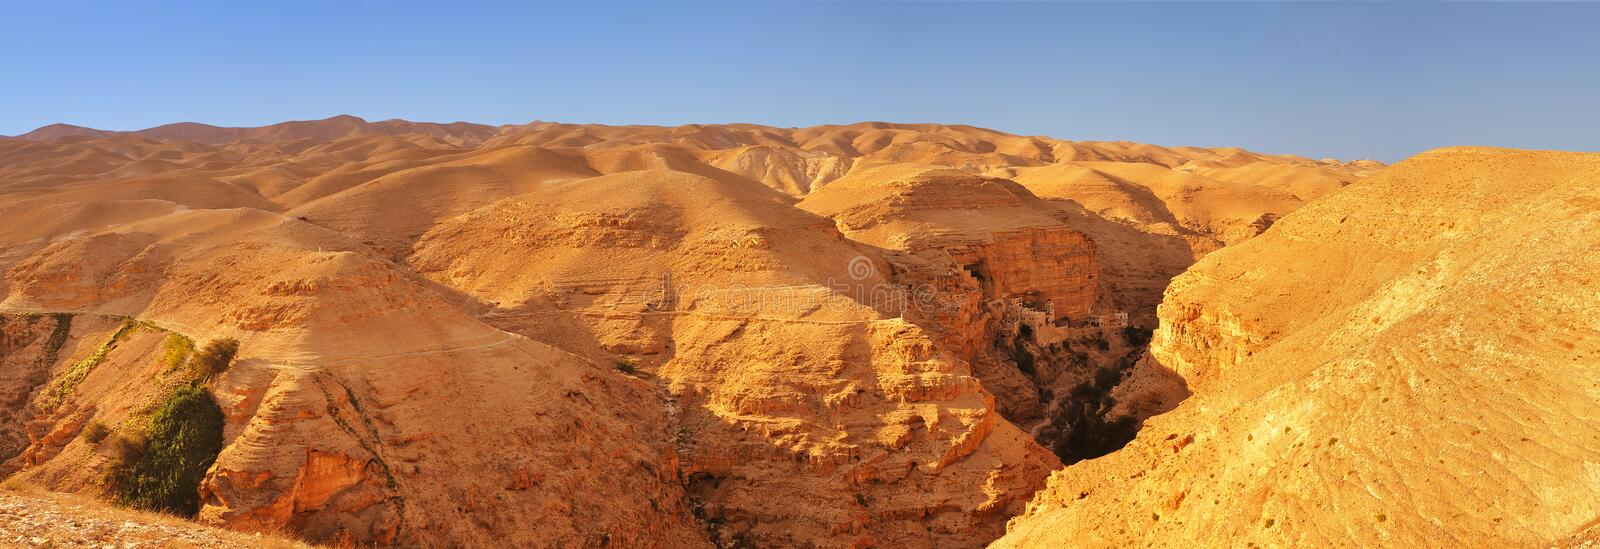 Judean desert. Panoramic view towards the Monastery of Tempation, Greek Orthodox church in Jericho in the West Bank stock photo